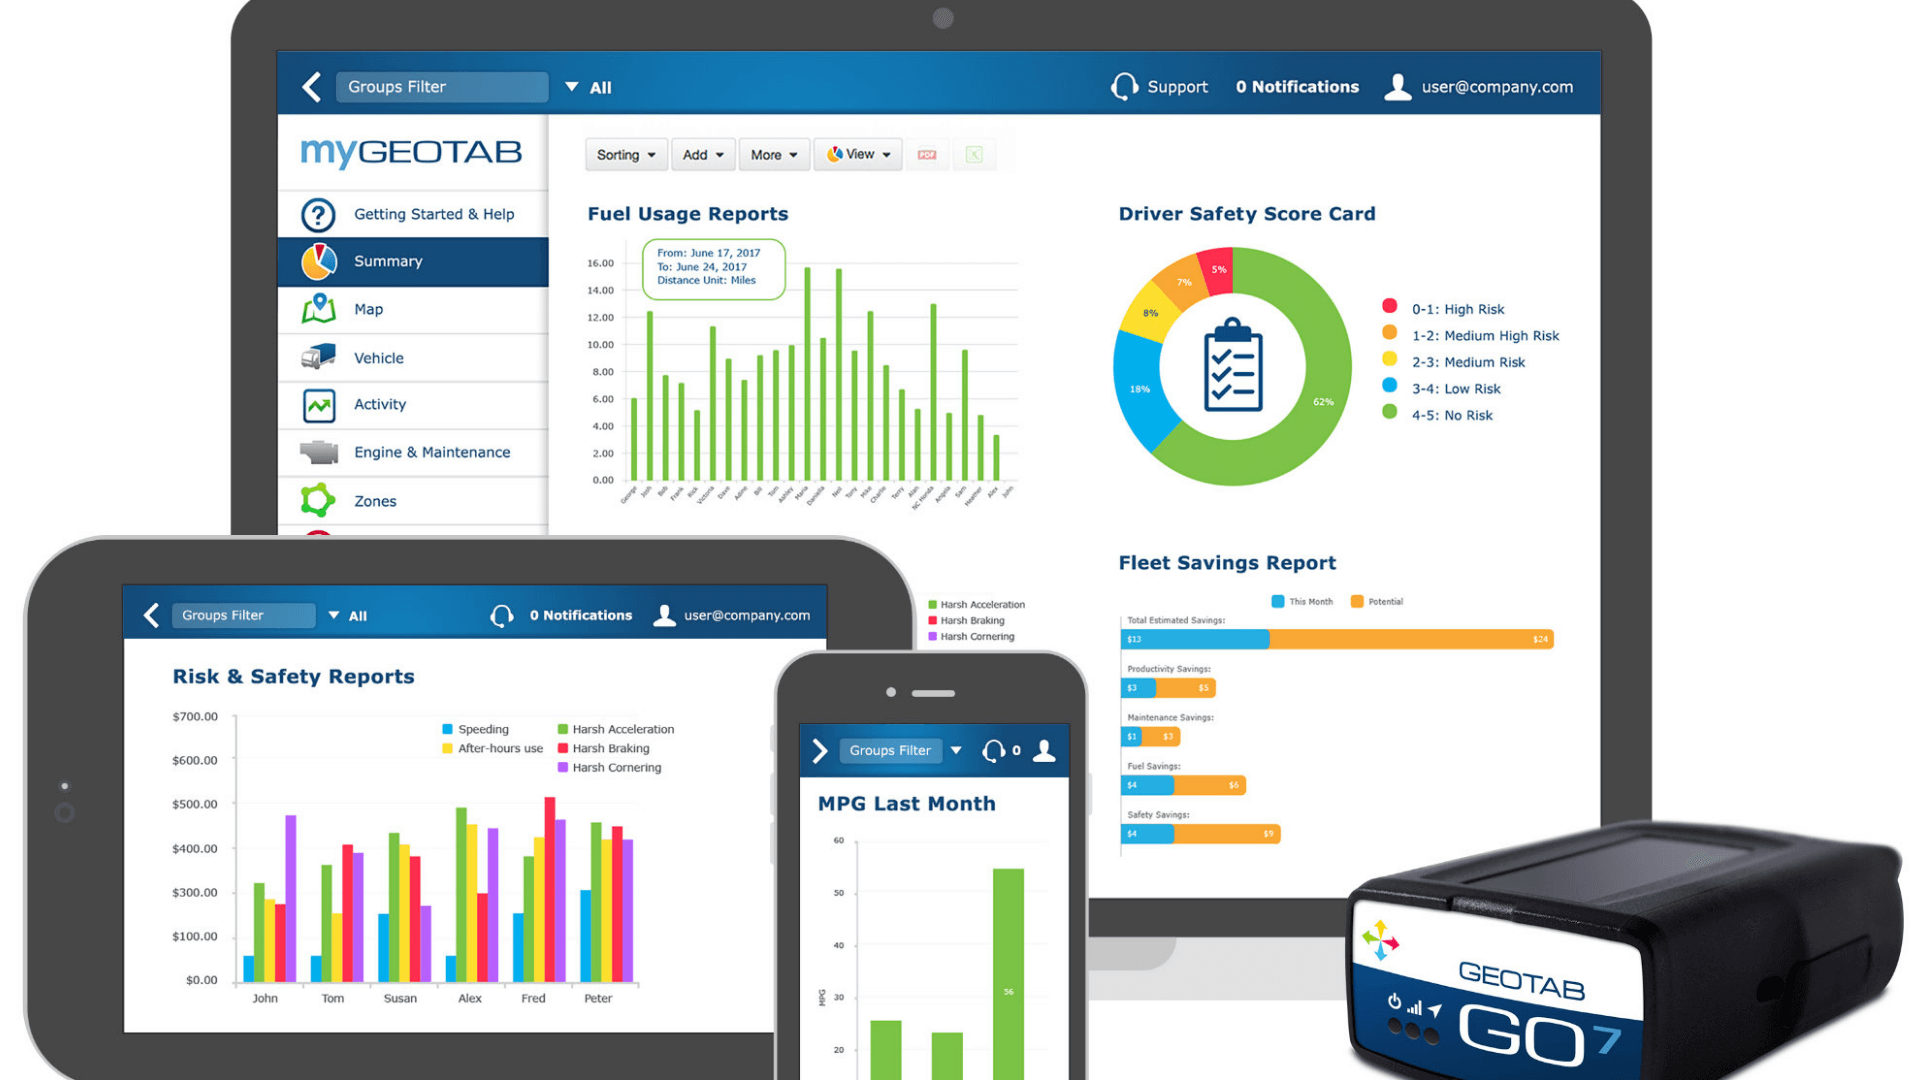 GEOTAB: Why You Should Integrate MyGeotab Into Your Business